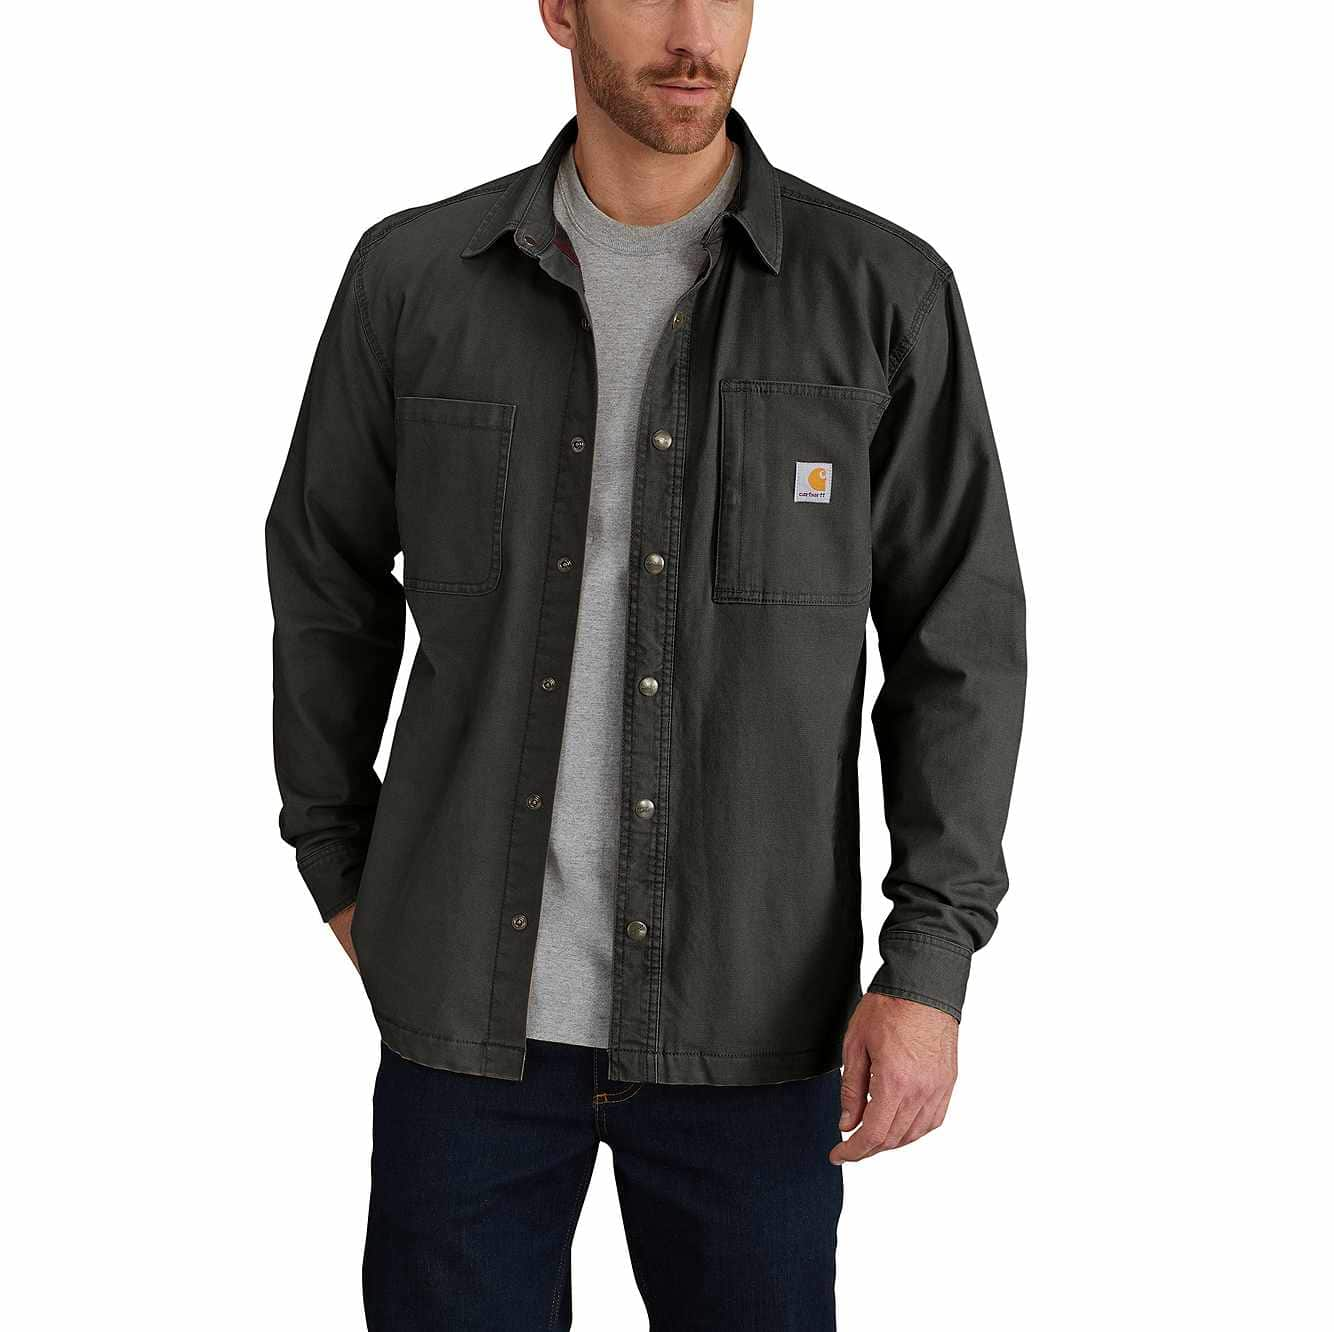 Picture of Rugged Flex® Rigby Shirt Jac/Fleece-Lined in Peat